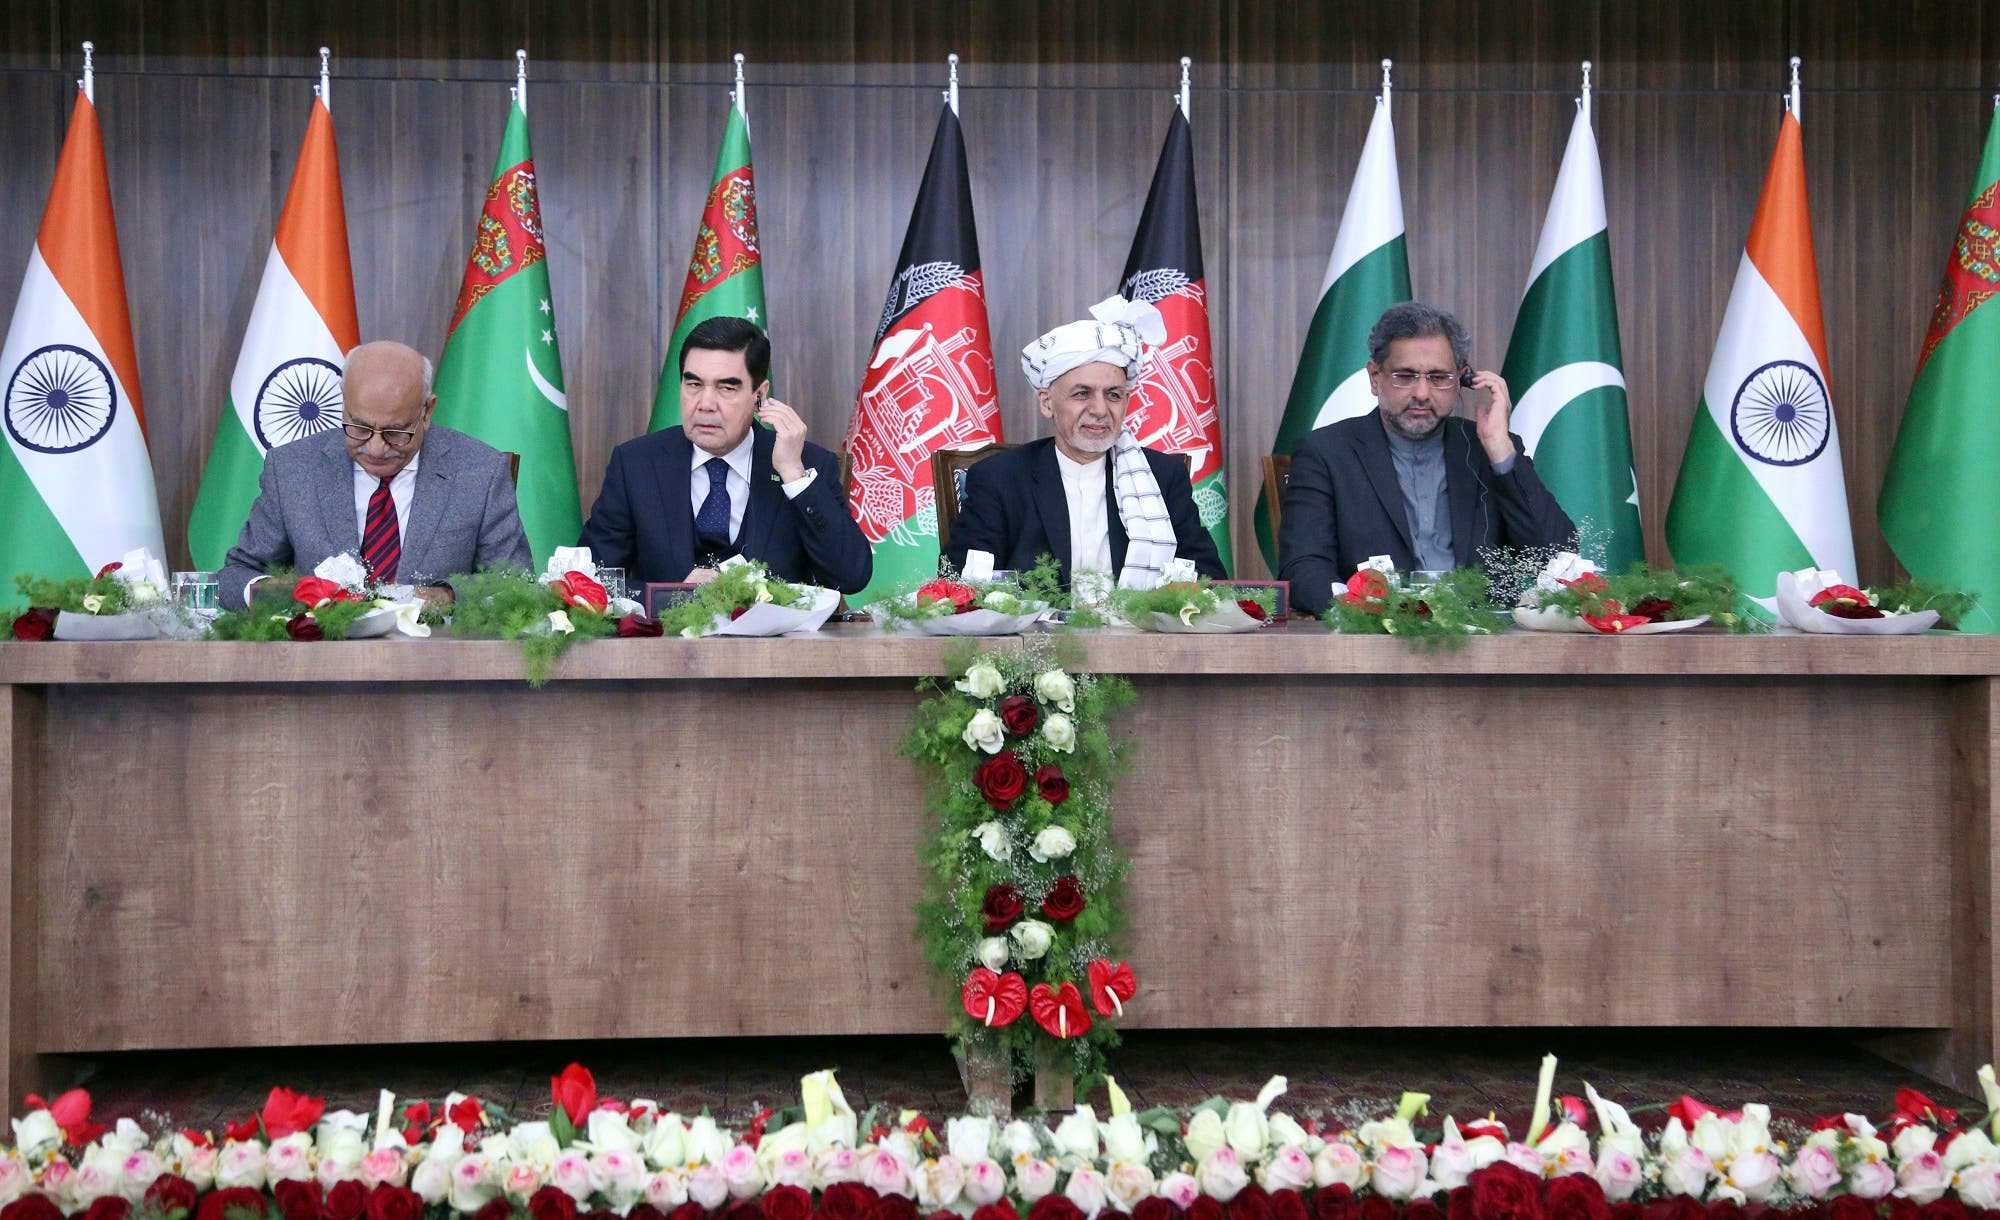 Afghanistan's President, Ashraf Ghani, third left, Turkimanistan president, Gubanguly Berdimuhamedow, second left, Pakistan Prime minister, Shahid Khaqan Abbasi, forth left, and Indian minister of state for external affairs, M. J. Akbar, first left, during the integration ceremony of TAPI pipeline in Herat on Feb. 23, 2018. (AP)